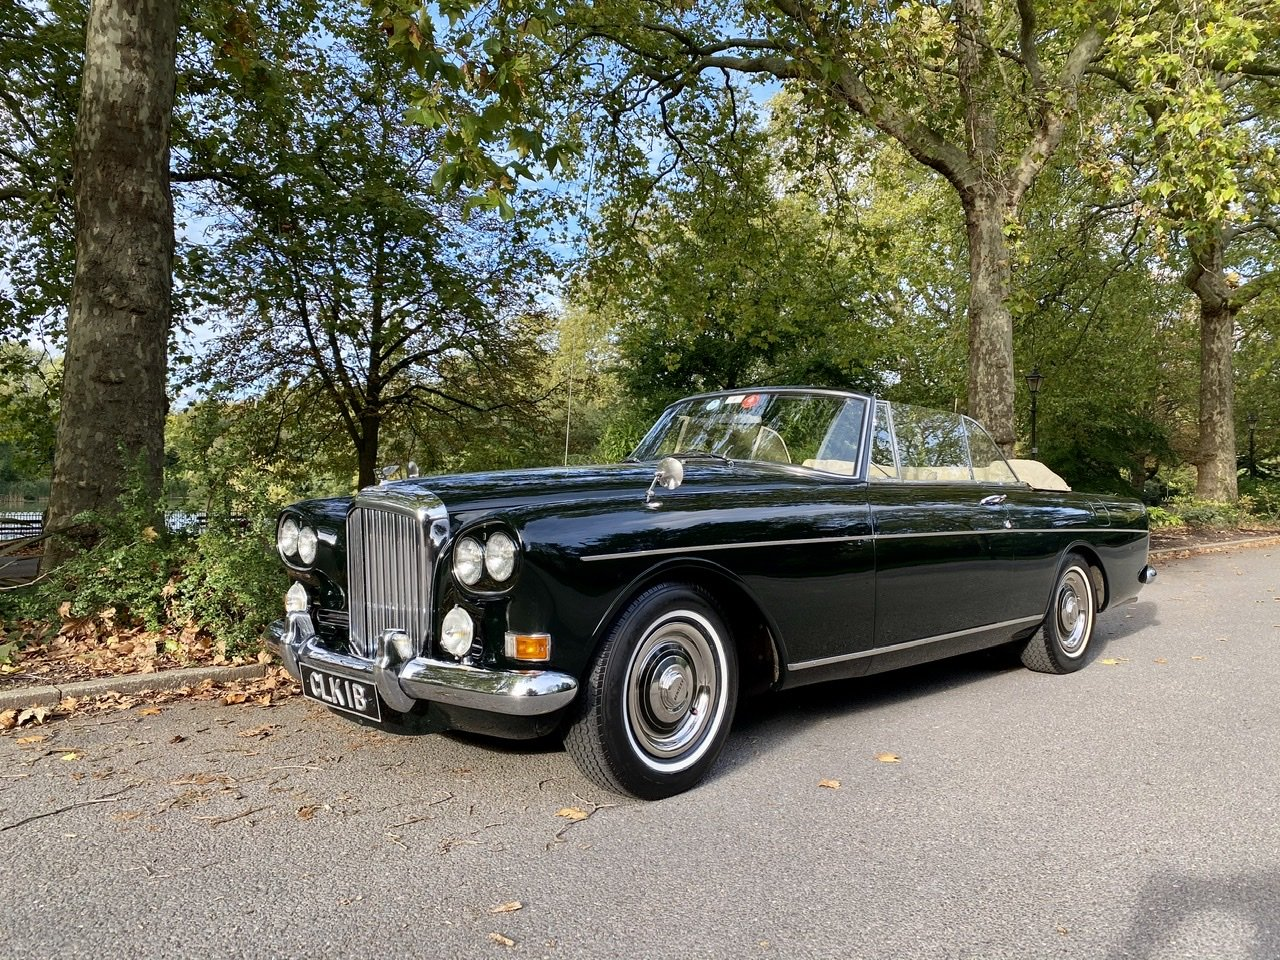 1964 Bentley S3 Continental Drop Head Coupe For Sale (picture 5 of 24)